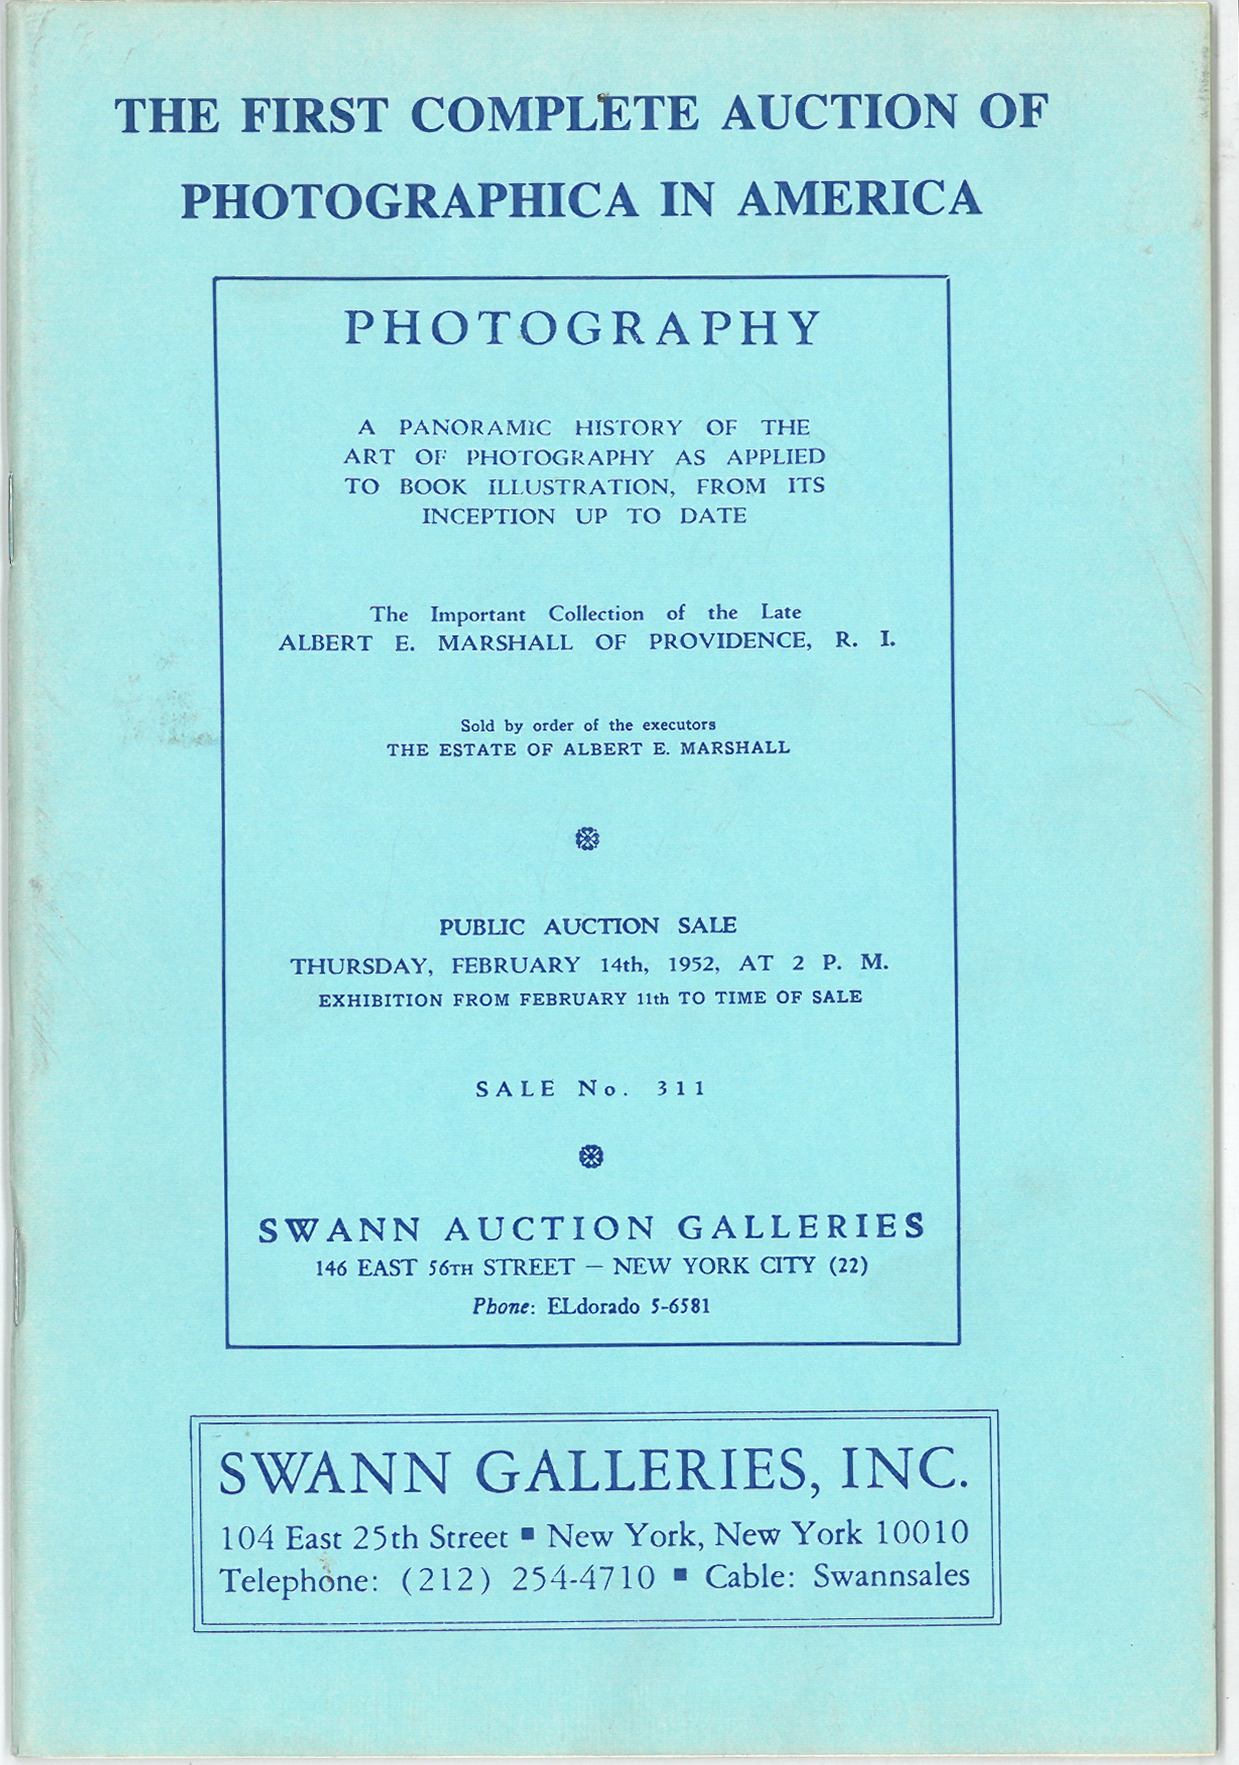 Cover of the Catalogue for America's first Photographs Auction